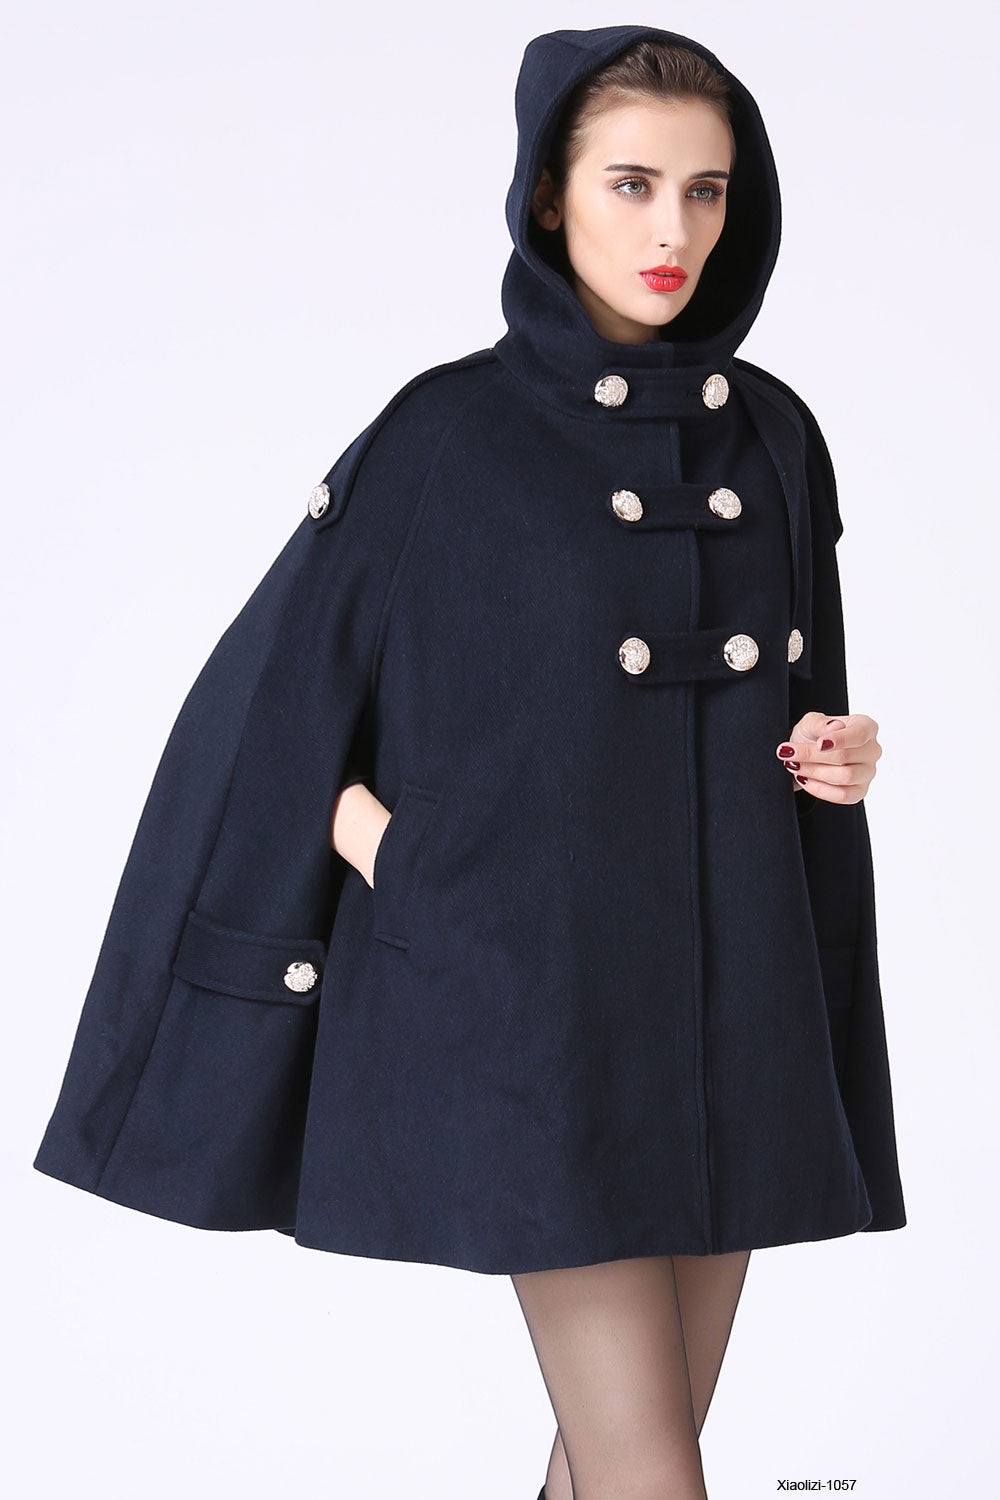 Double breasted wool cape coat with hood 1057#